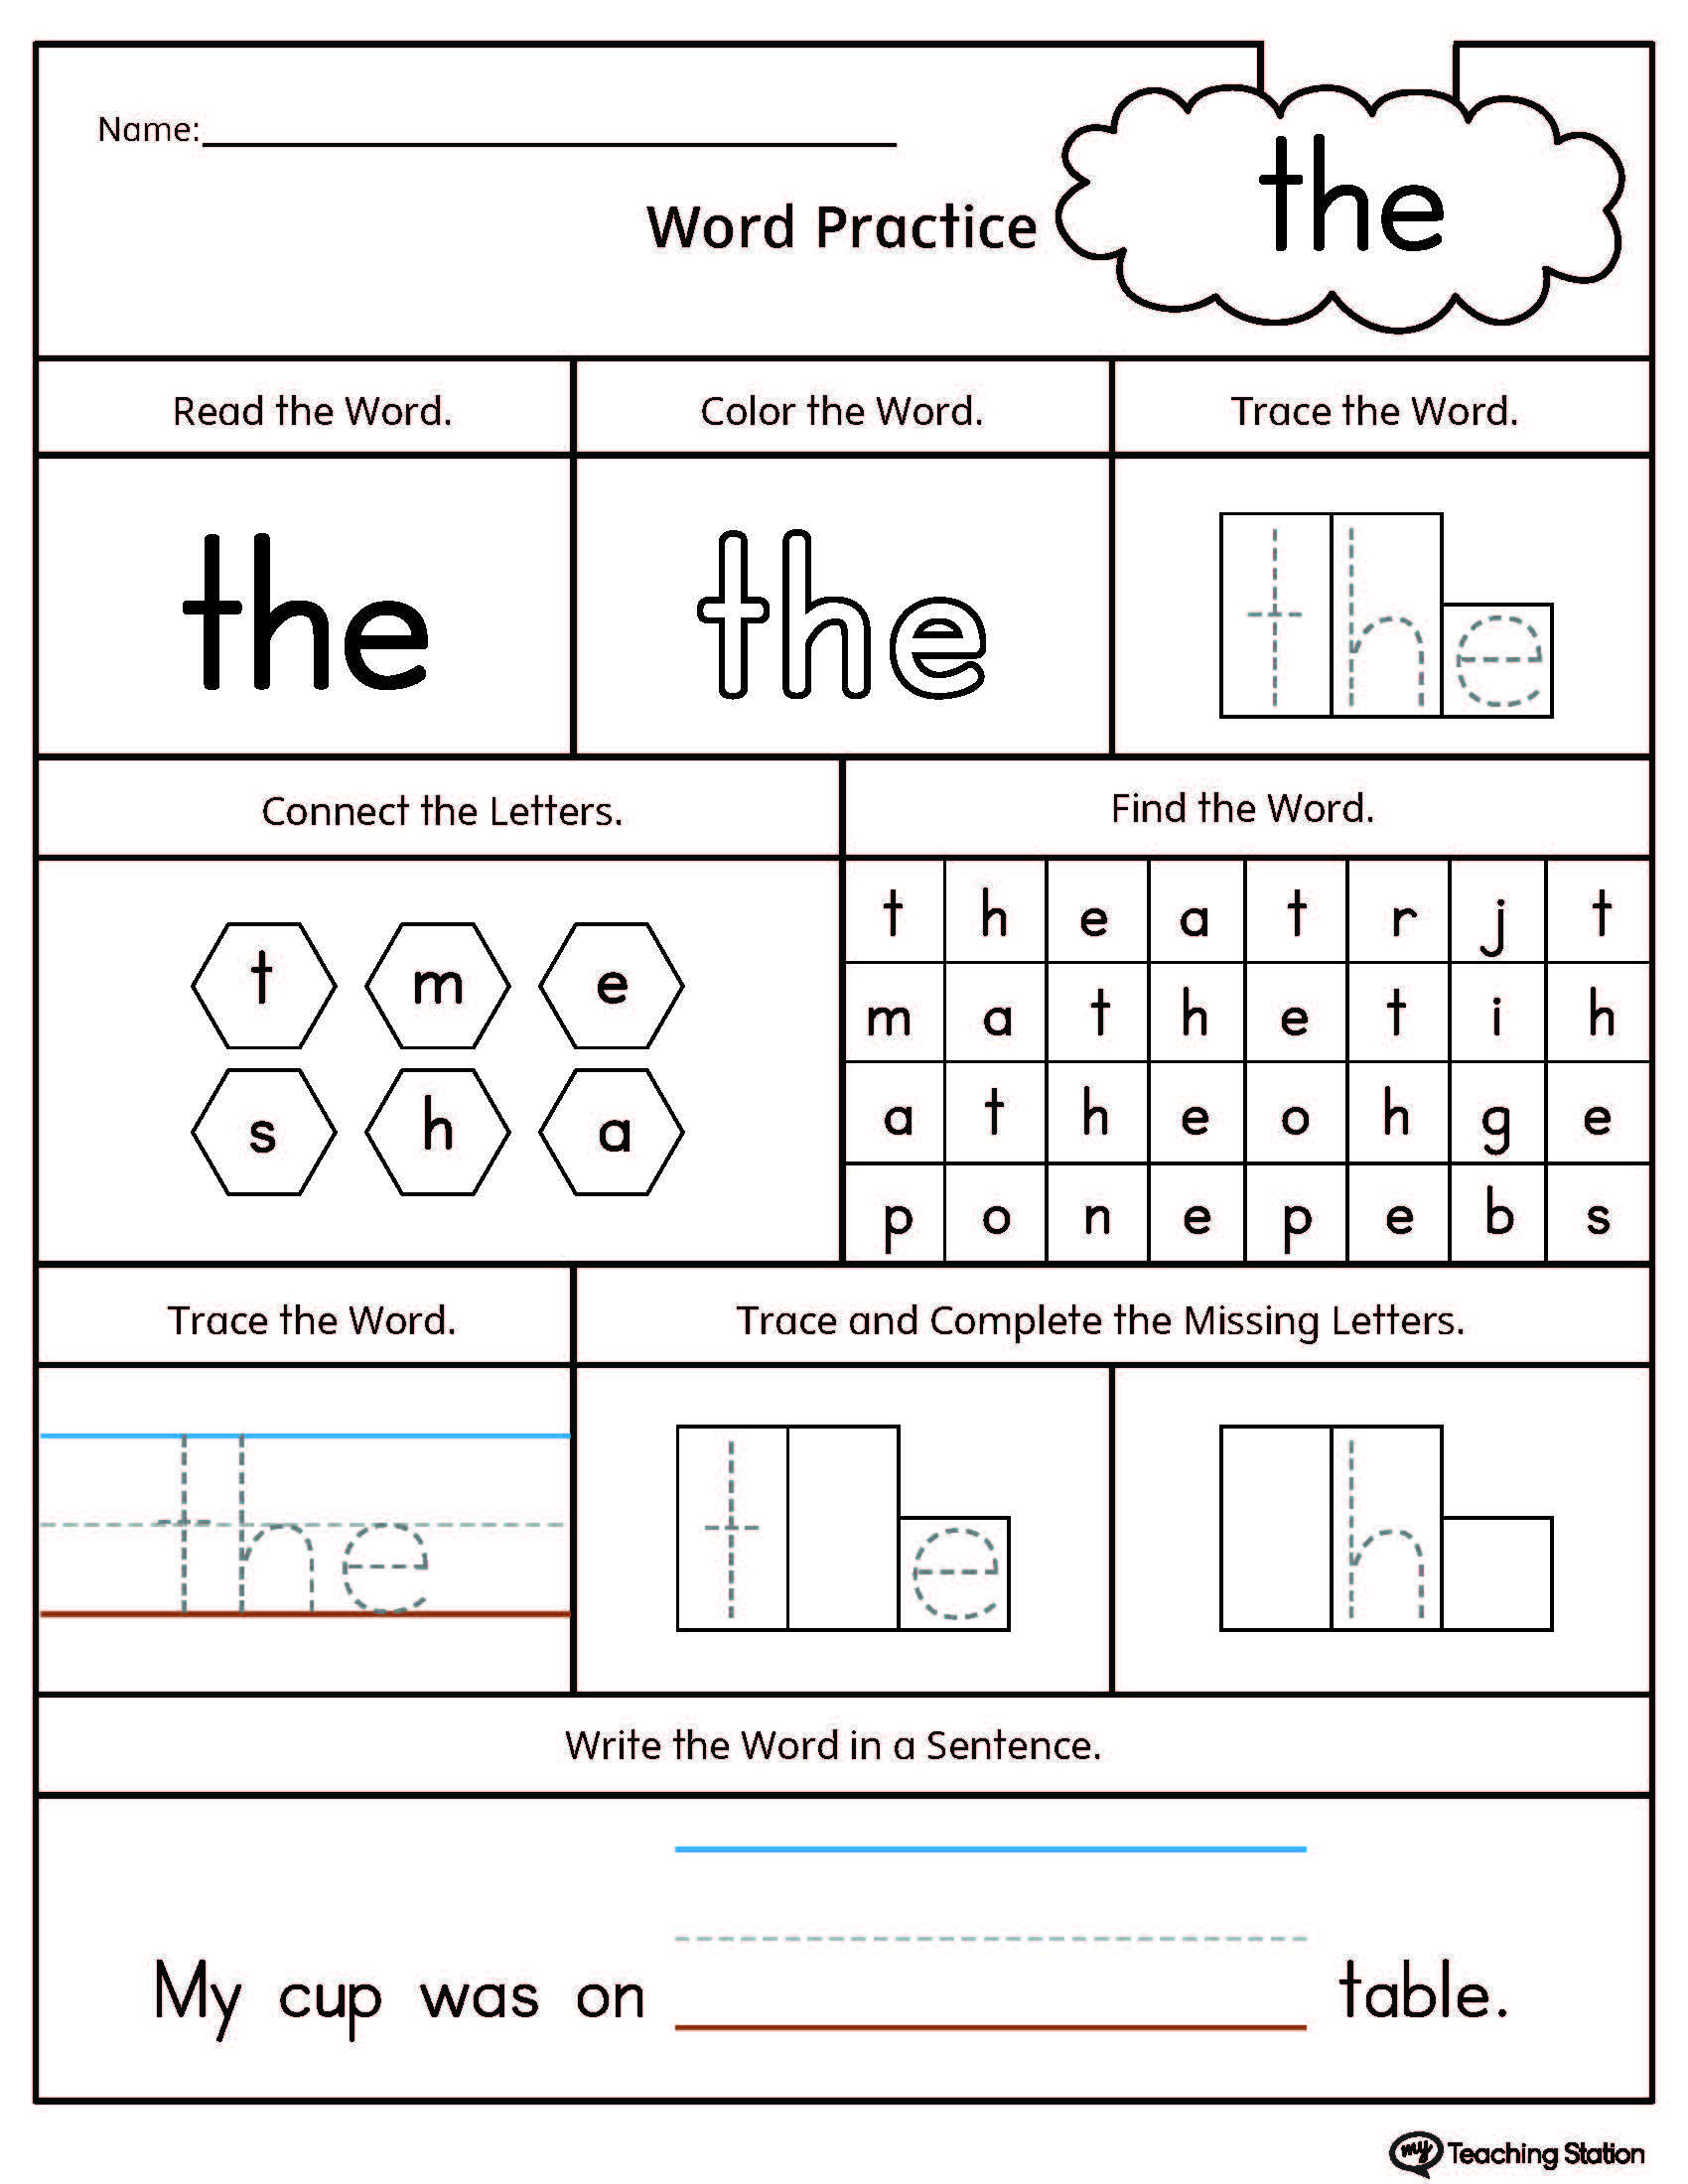 Stupendous image with regard to free printable sight word activities